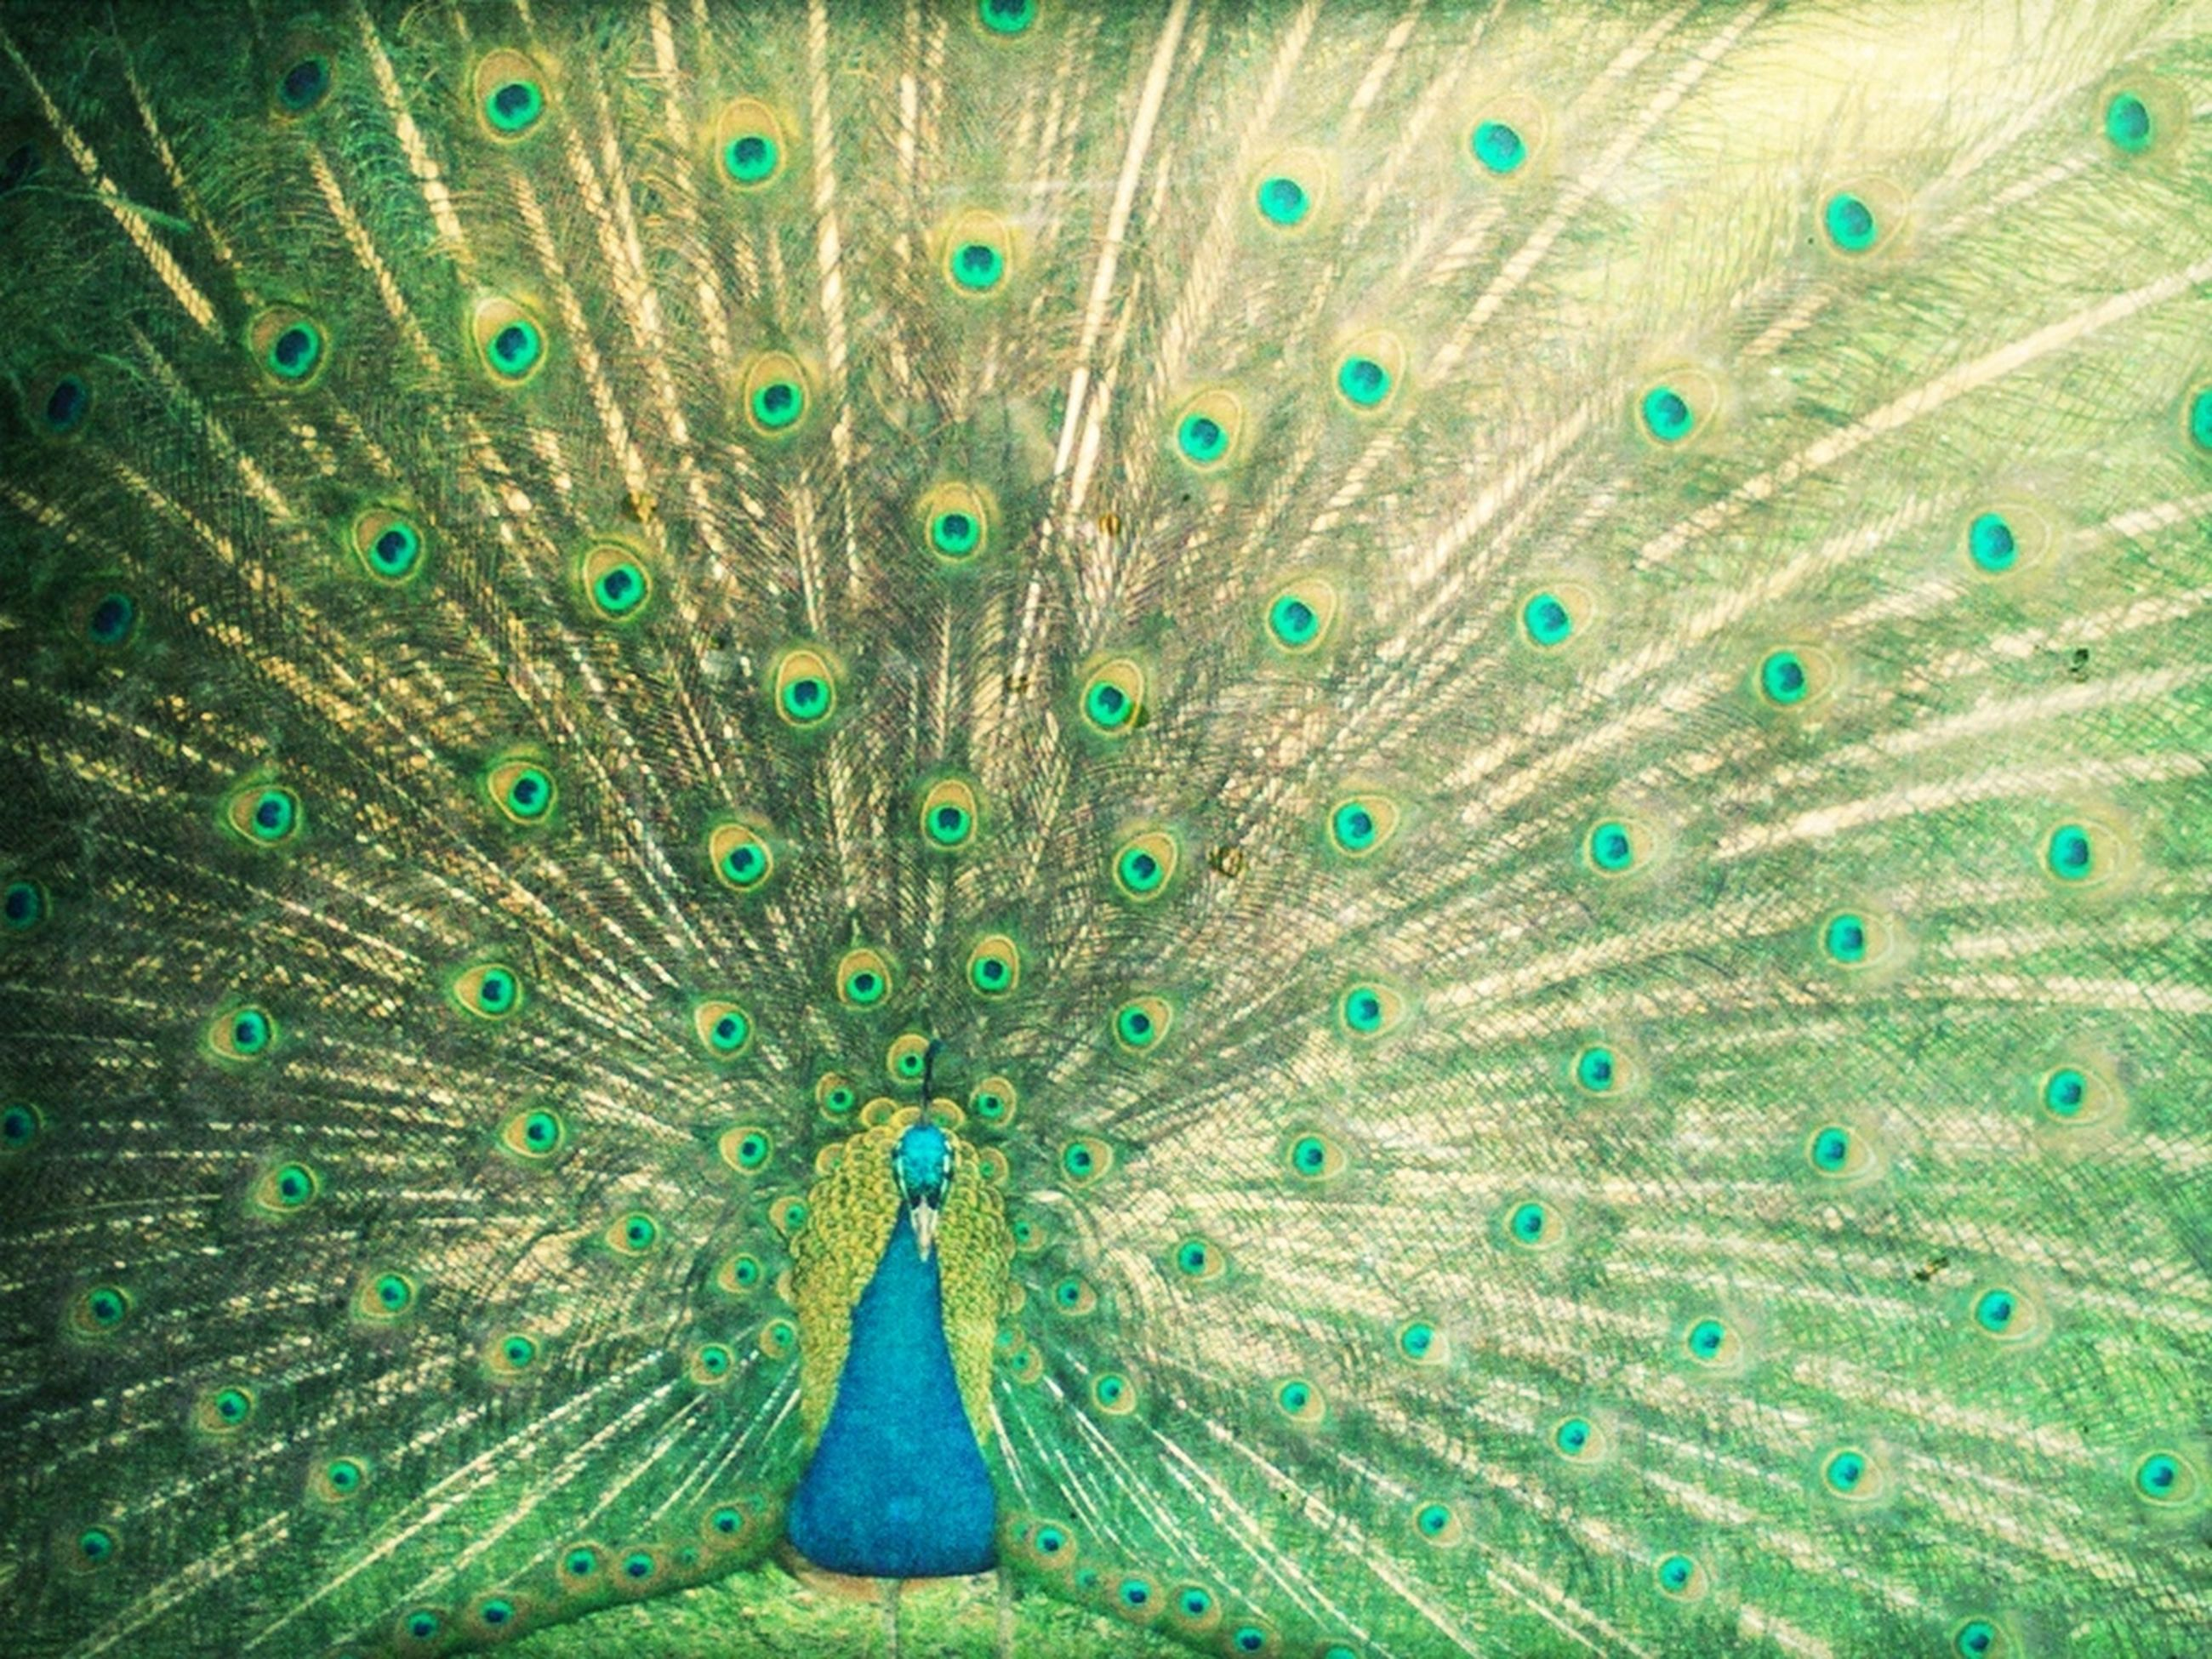 animal themes, peacock, one animal, animals in the wild, wildlife, bird, peacock feather, feather, natural pattern, male animal, close-up, beauty in nature, nature, fanned out, blue, multi colored, full frame, outdoors, backgrounds, animal head